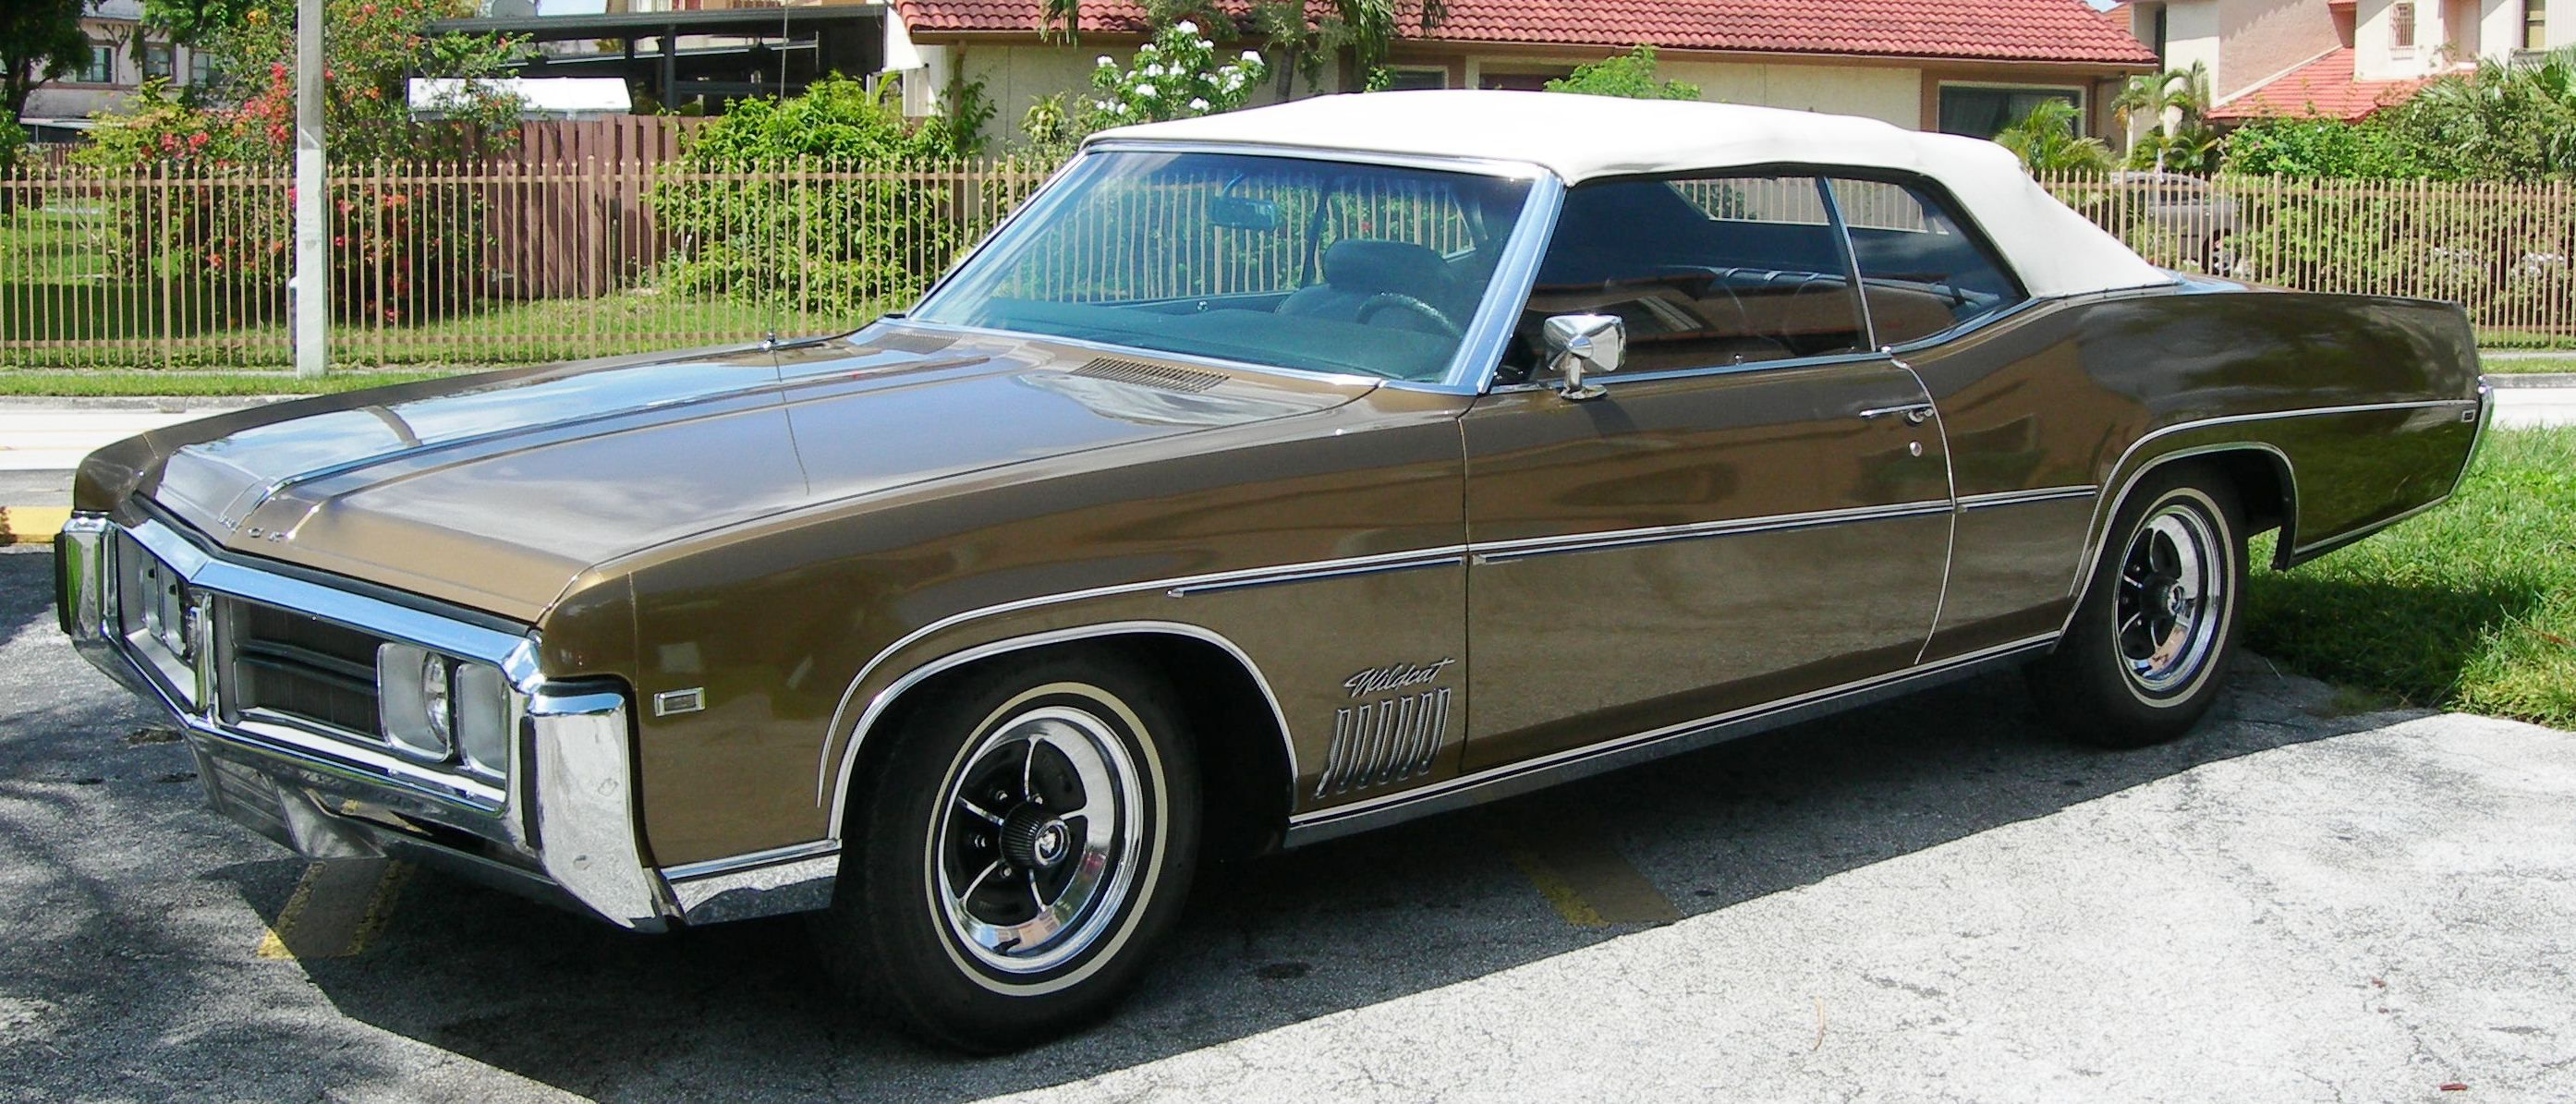 1969 Buick Wildcat | 1969 Buick Wildcat - MIAMI 33184 - 0 | Stuff to ...